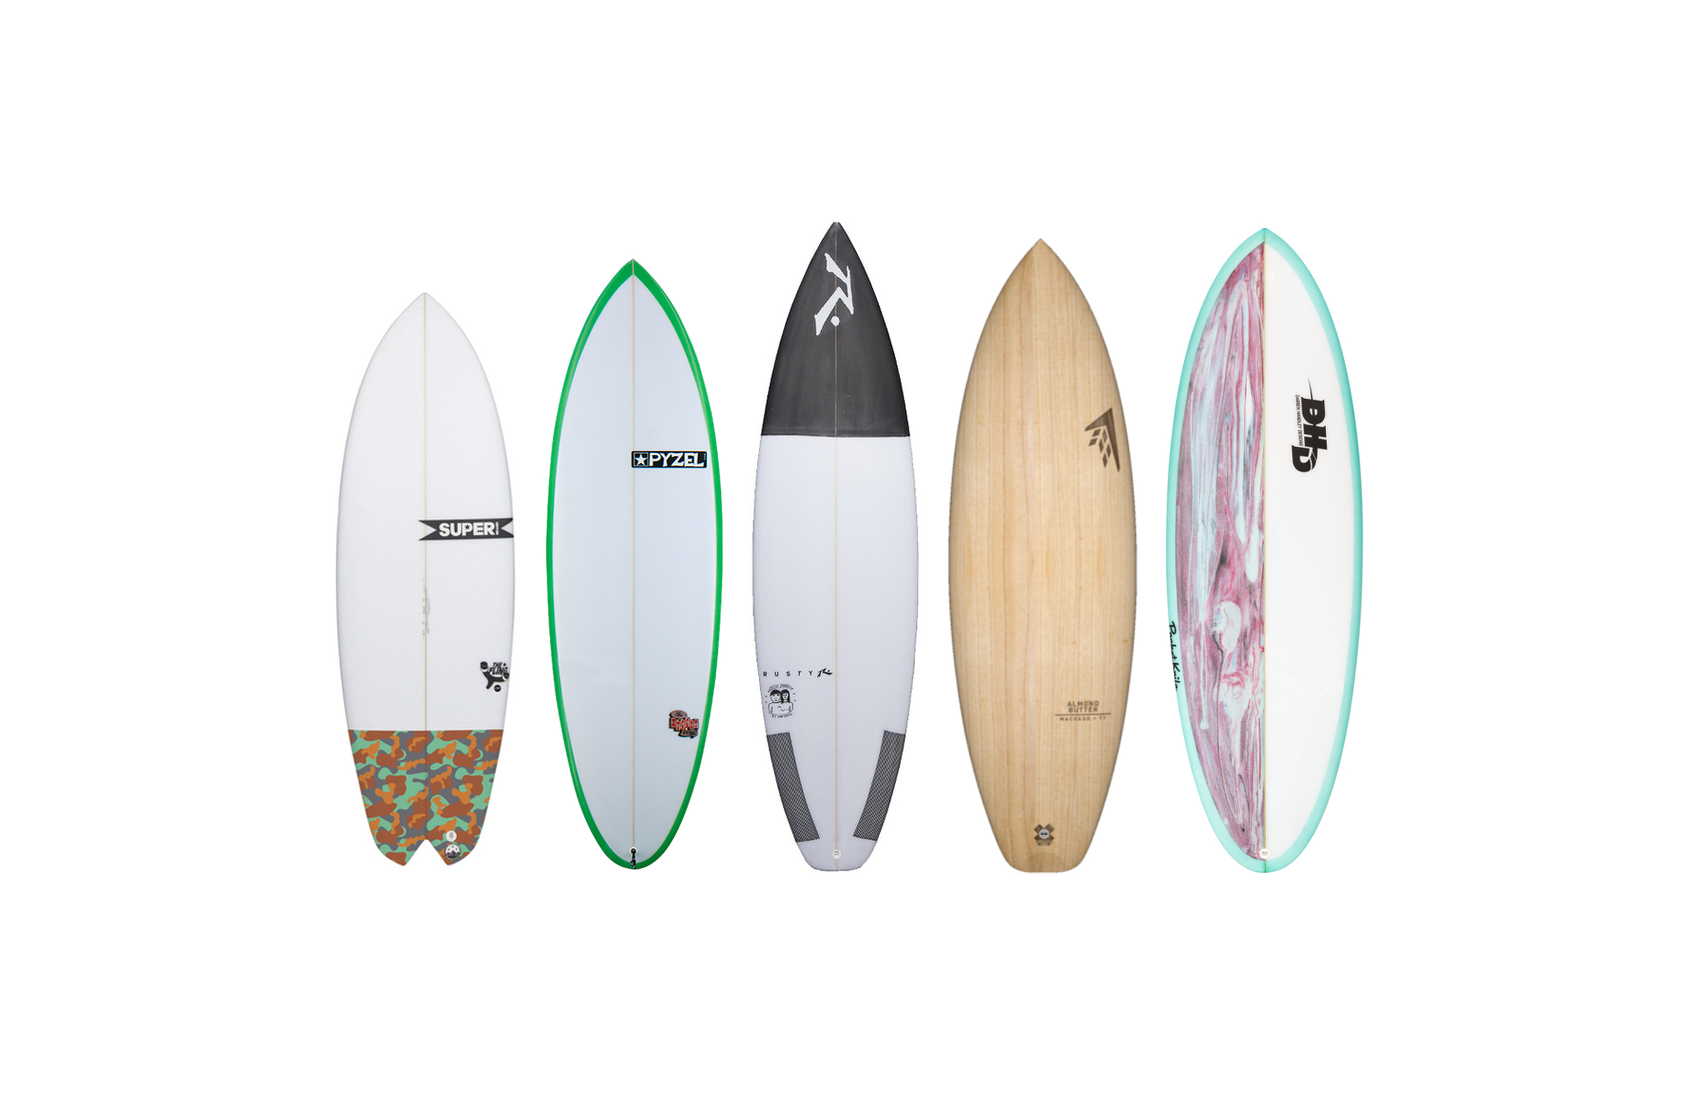 Intermediate surfboard templates